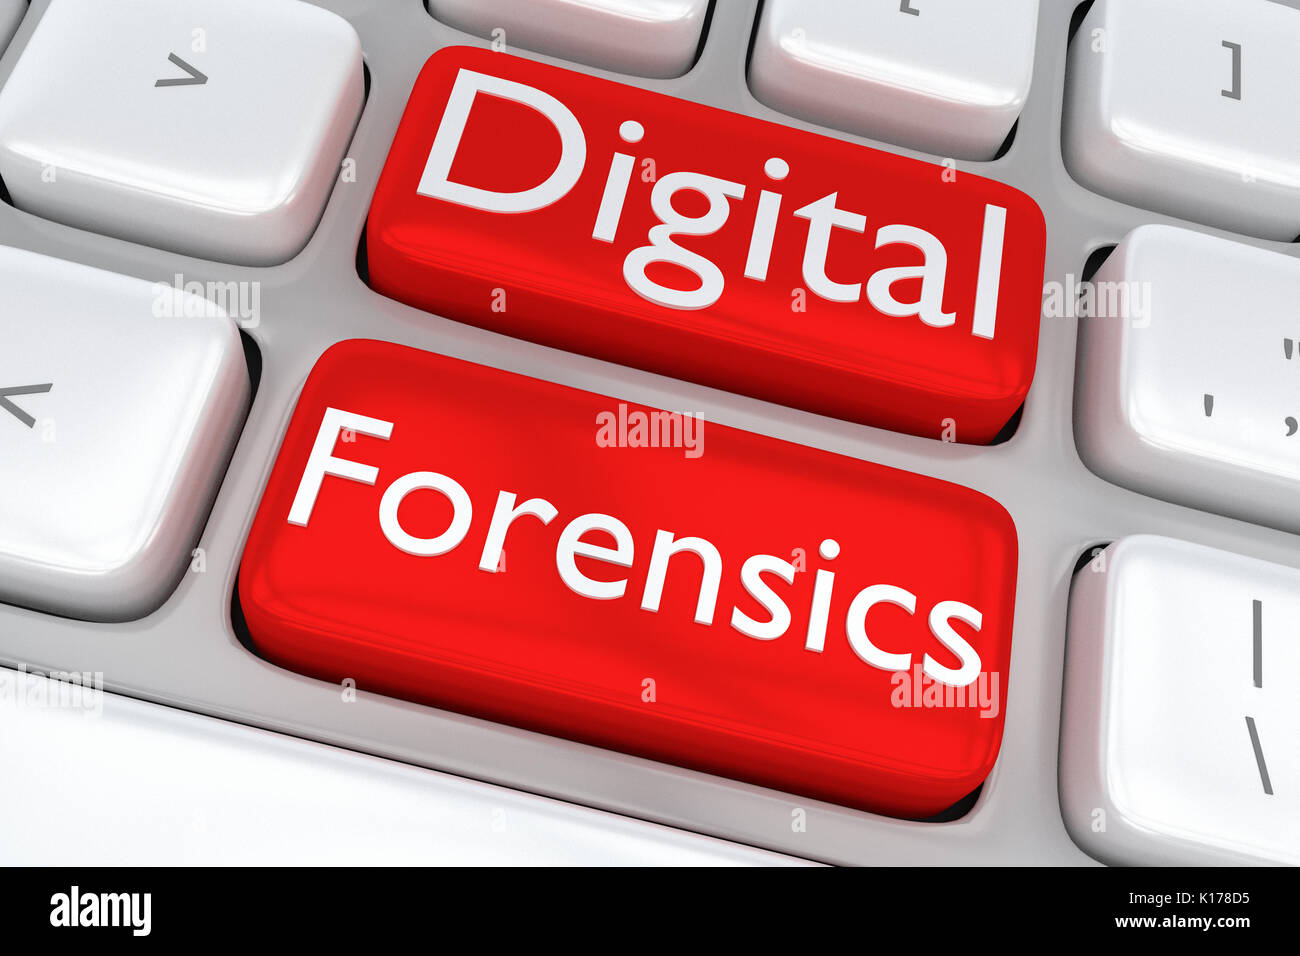 digital forensic 2 What is the salary for someone in digital forensics digital forensics specialists recover deleted or encrypted data from computers to assist in legal investigations.